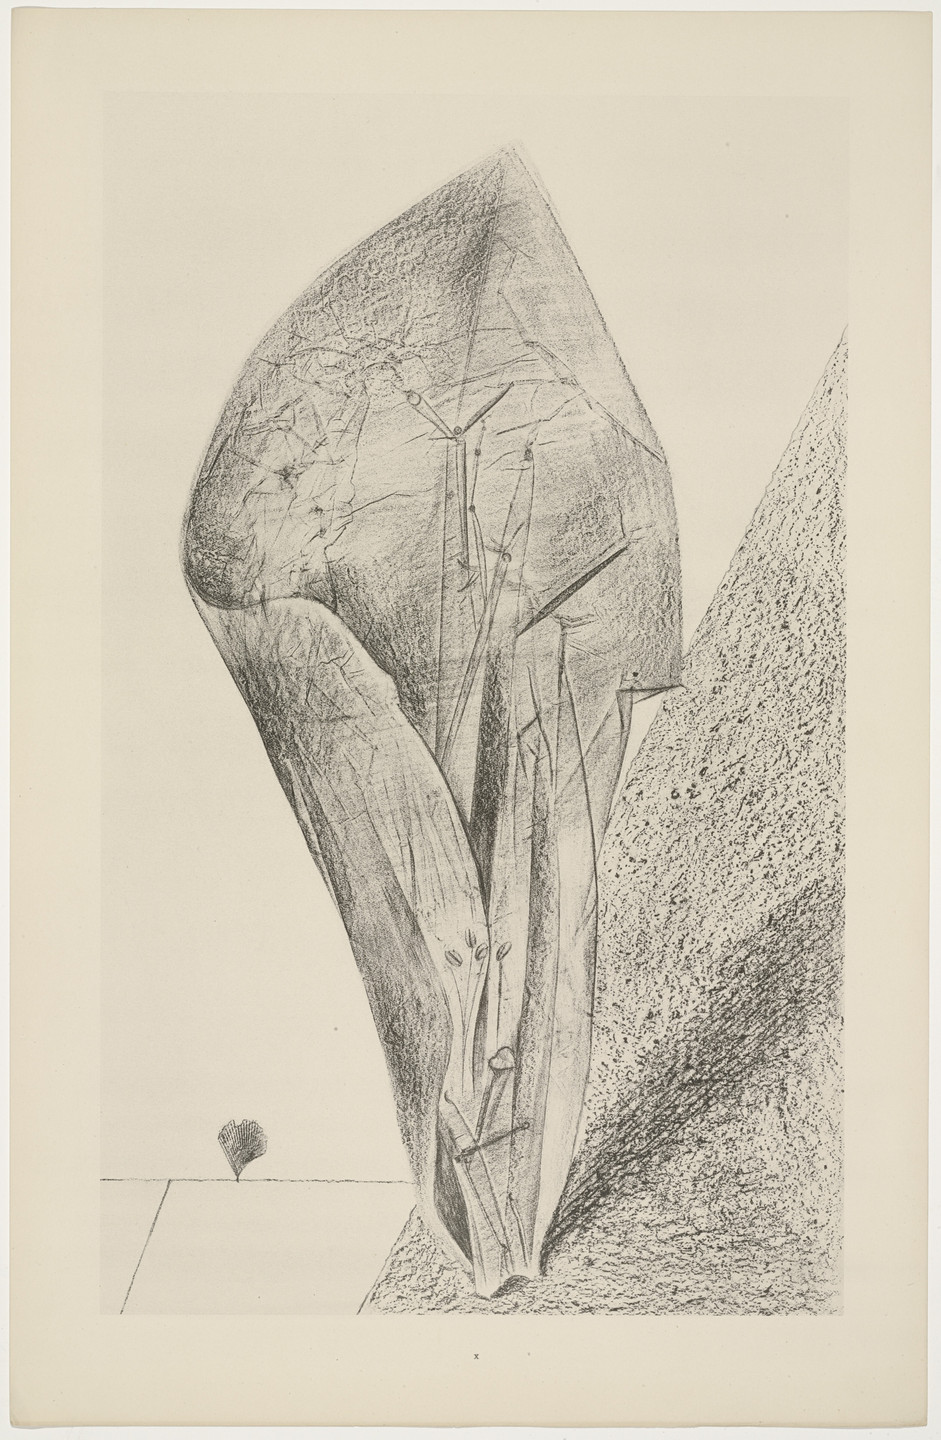 Max Ernst. She Guards Her Secret (Elle garde son secret) from Natural History (Histoire naturelle). c. 1925, published 1926